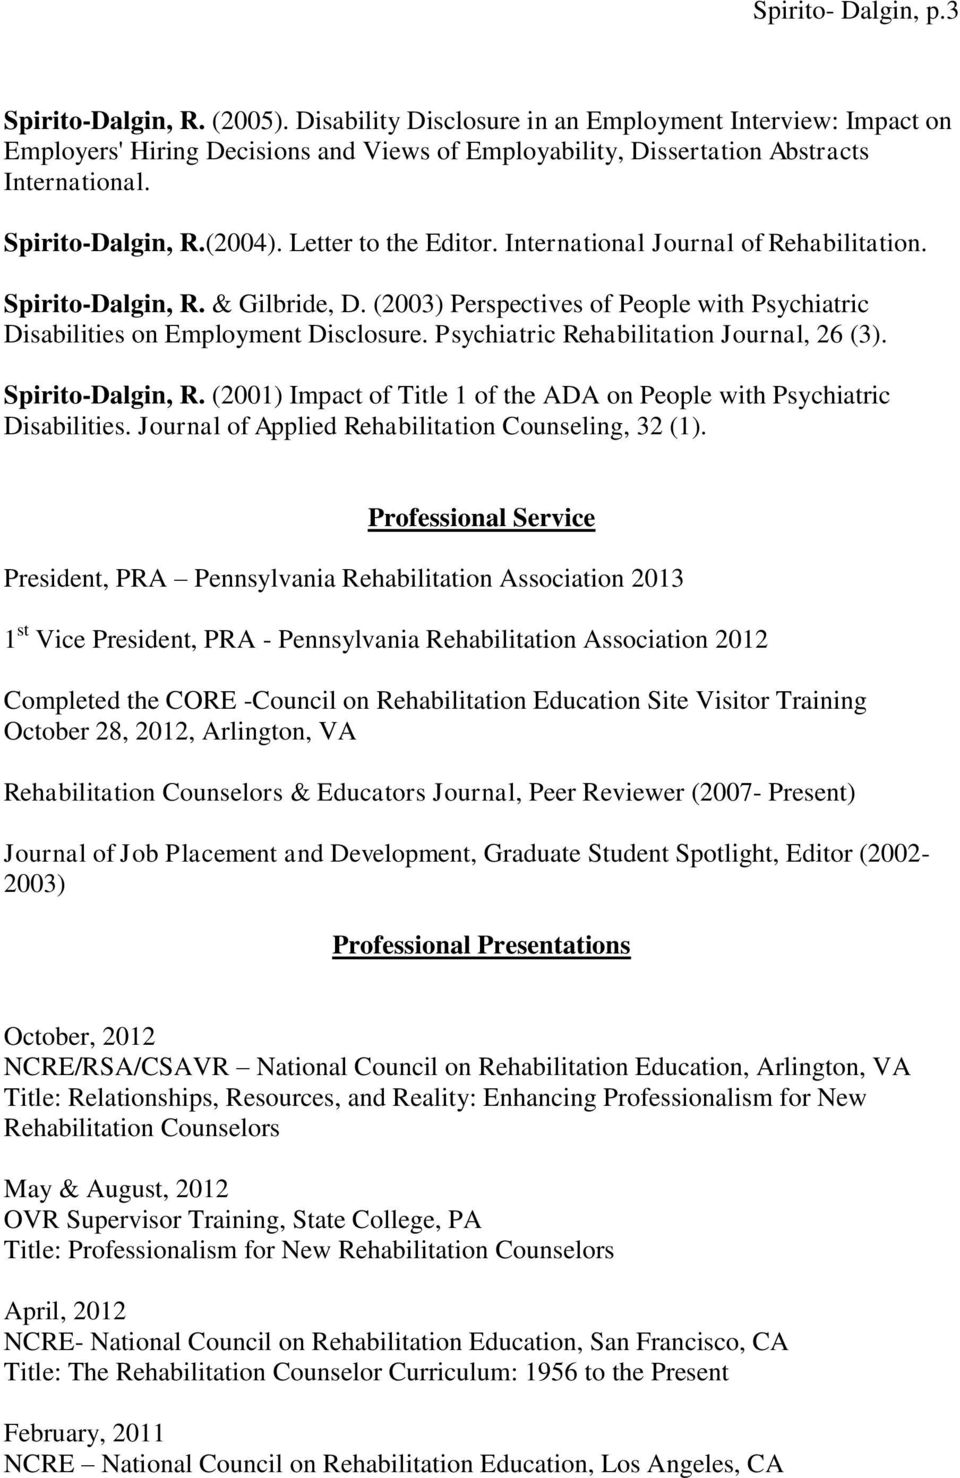 Letter to the Editor. International Journal of Rehabilitation. Spirito-Dalgin, R. & Gilbride, D. (2003) Perspectives of People with Psychiatric Disabilities on Employment Disclosure.